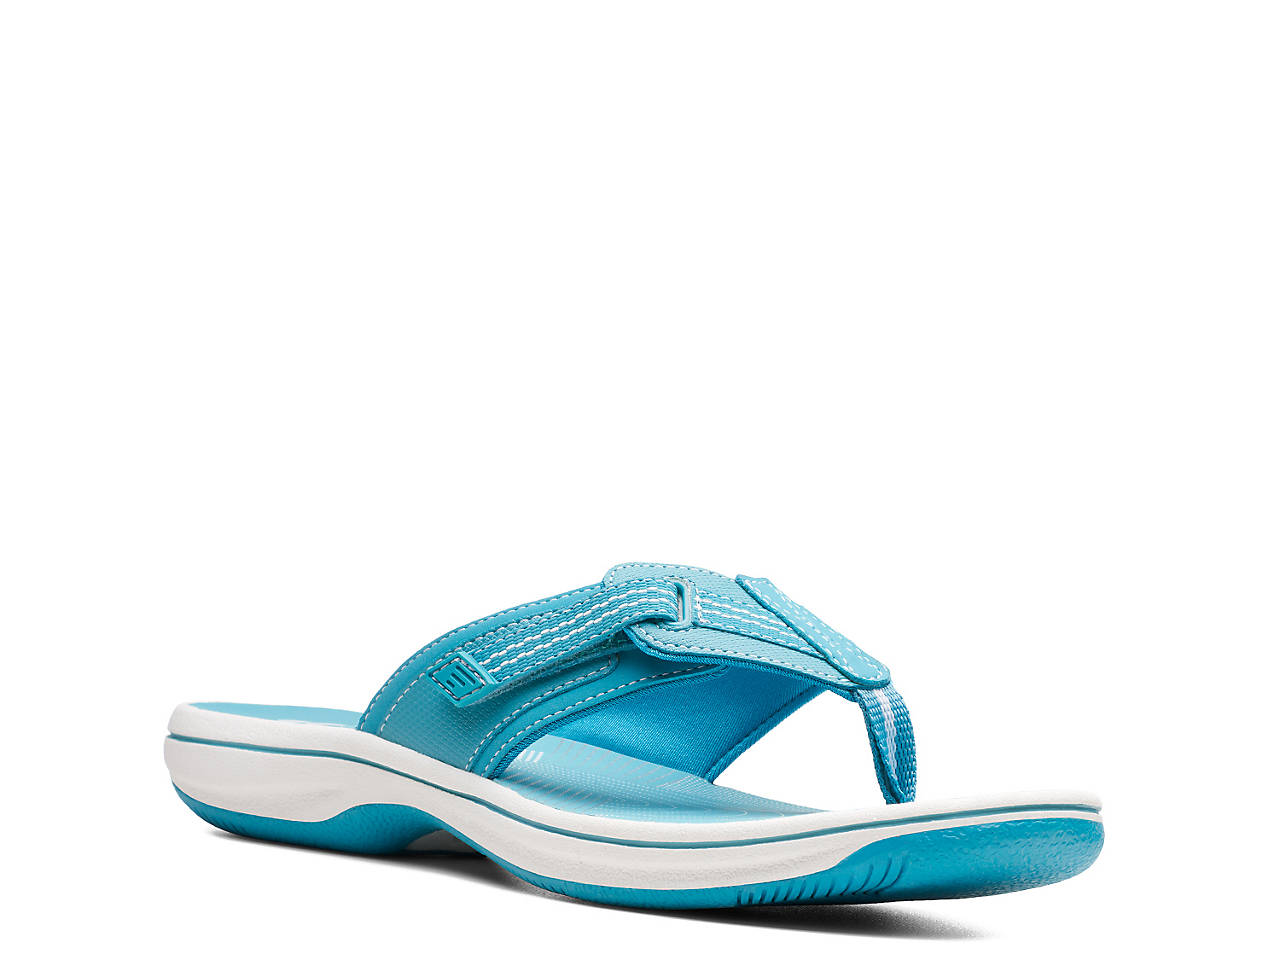 Cloudsteppers By Clarks Brinkley Drift Flip Flop Womens -2460